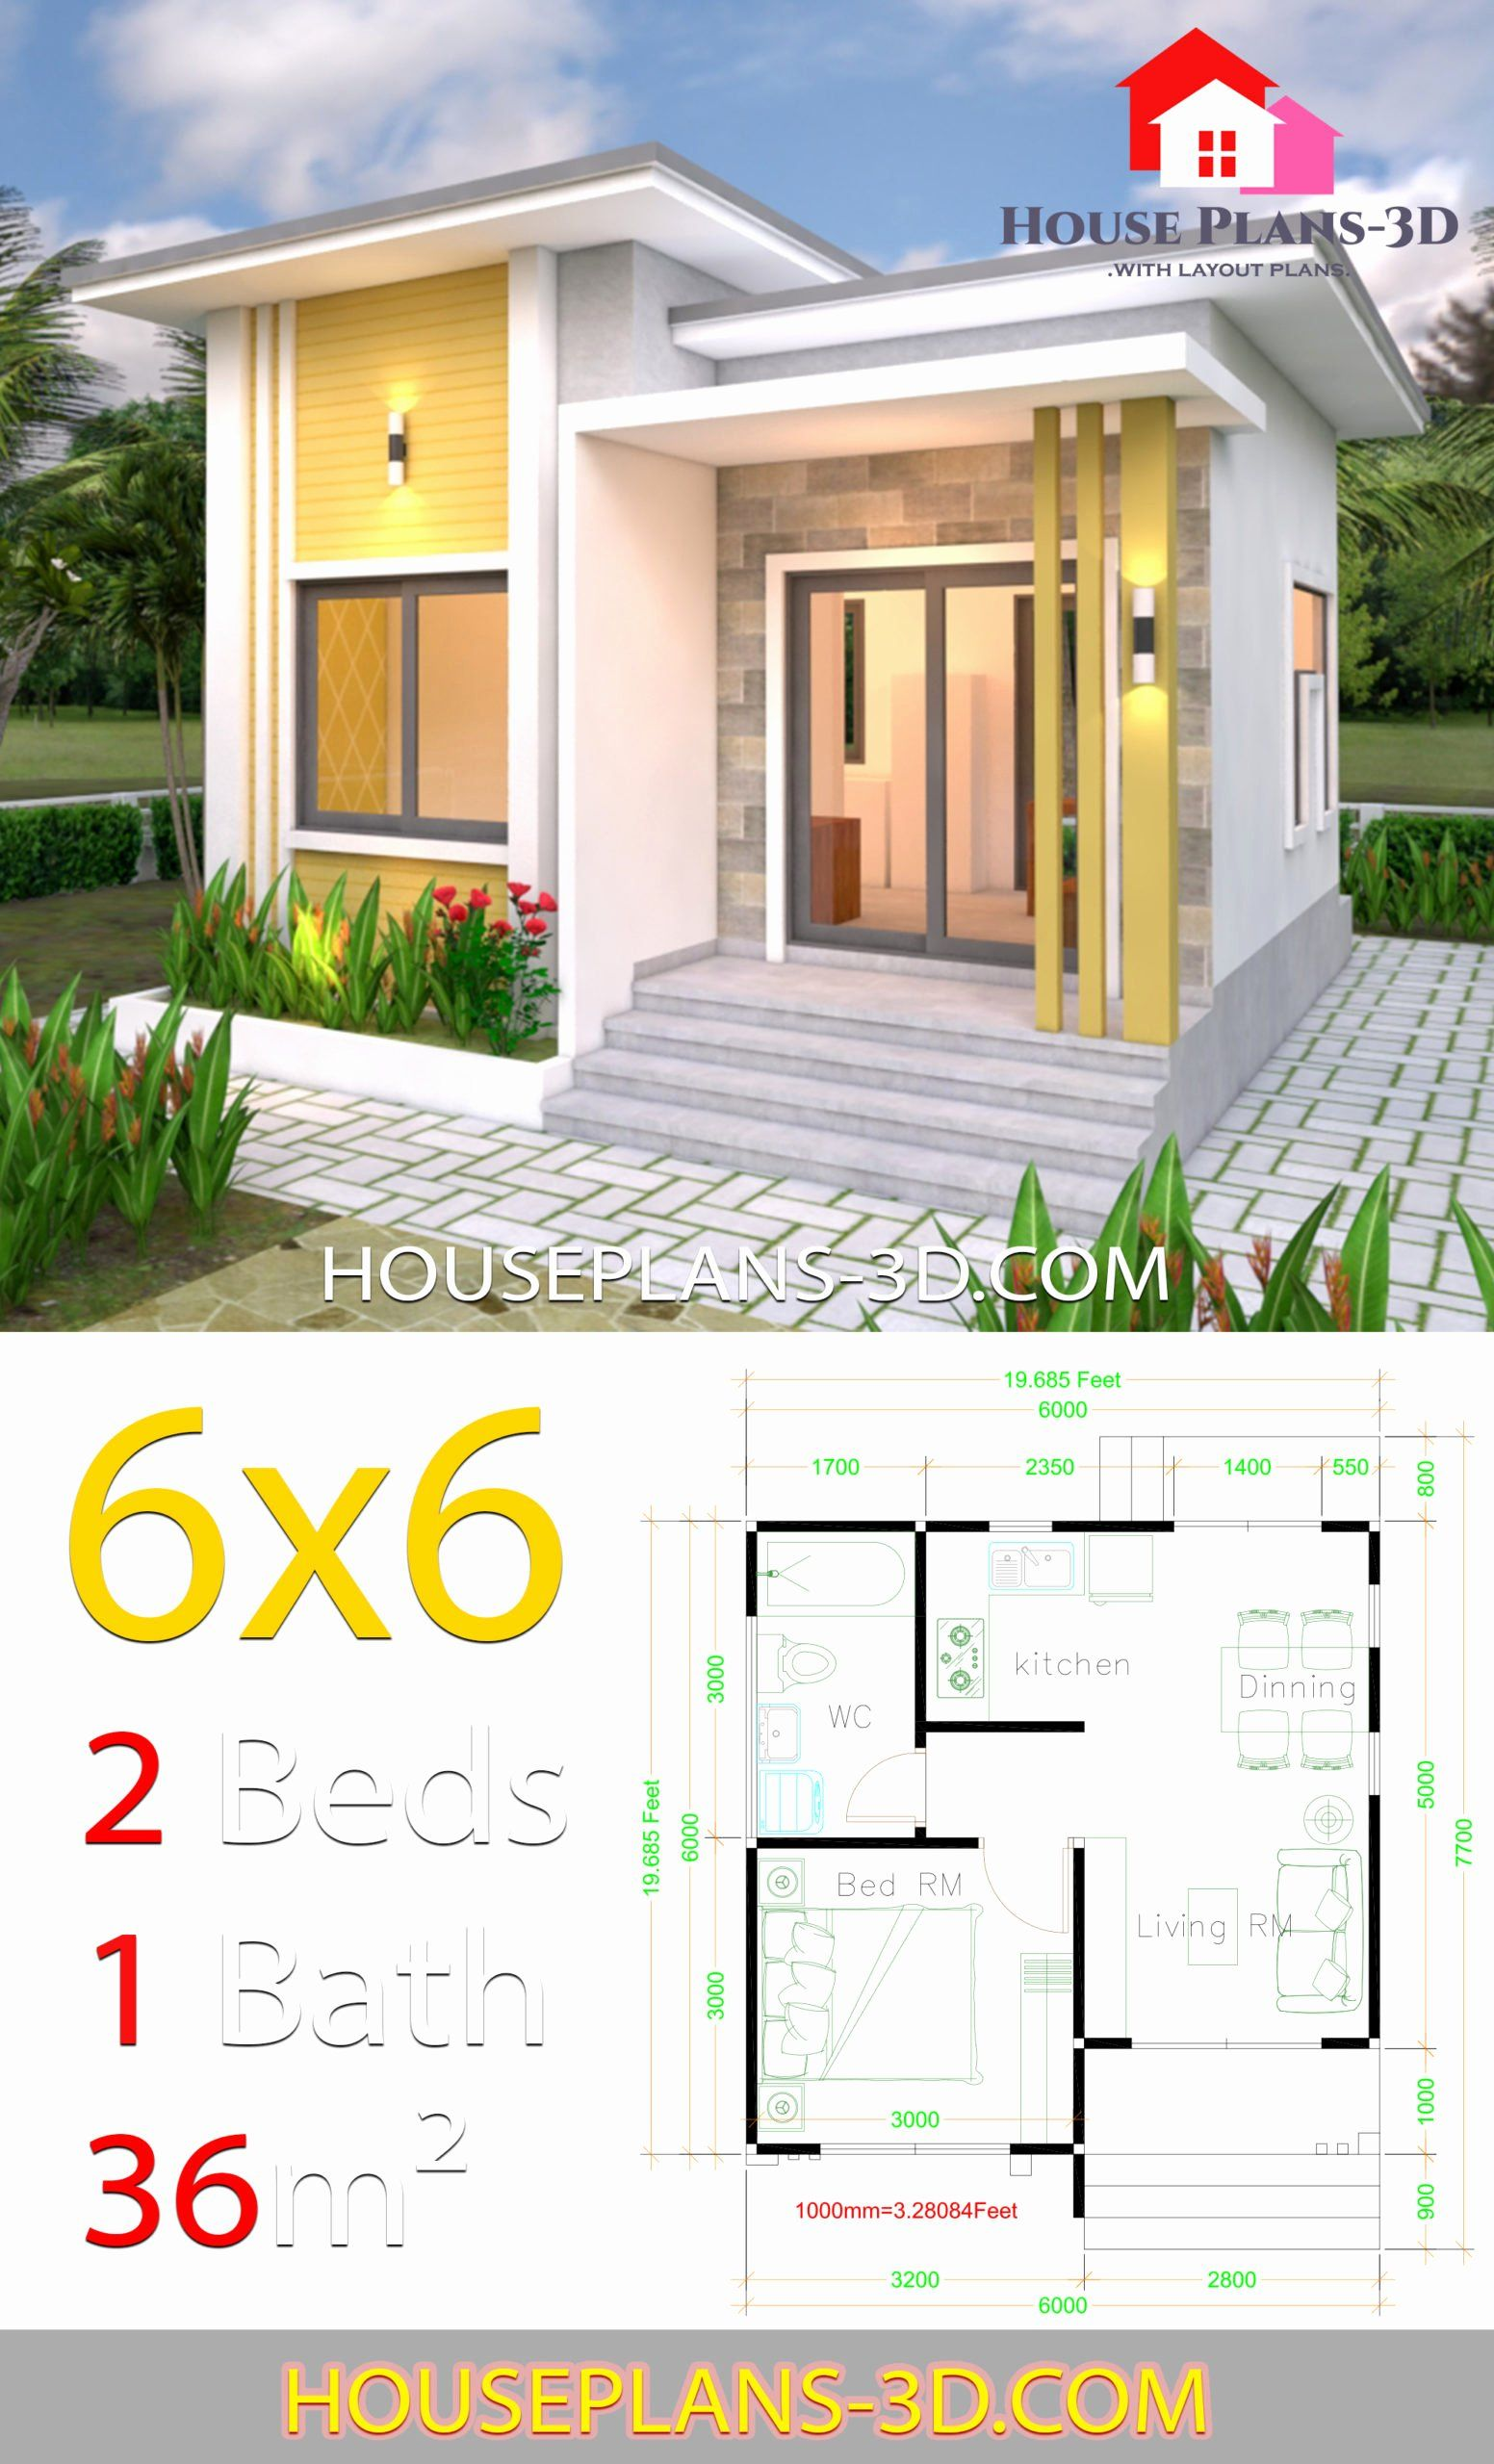 6 X 6 Bathroom Plans Elegant House Plans 6 6 With E Bedrooms Flat Roof House Plans 3d Tanjung Best In 2020 Small House Blueprints Flat Roof House House Plans